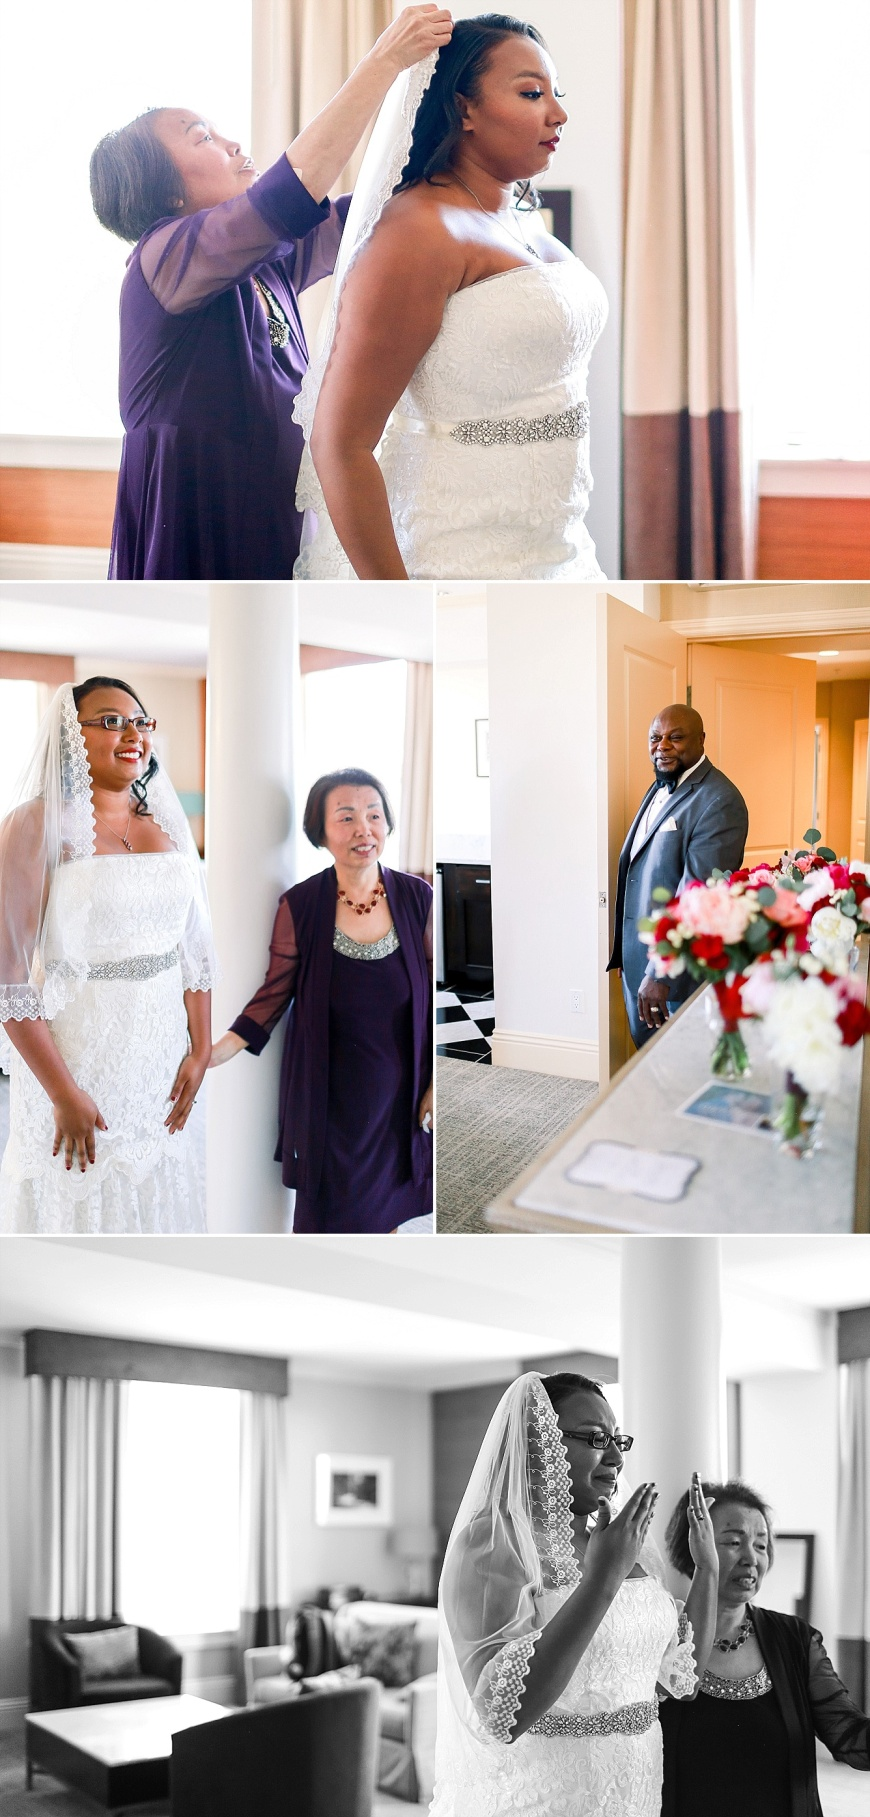 Hotel-Shattuck-Downtown-Berkeley-Wedding-Photographer_1012.jpg